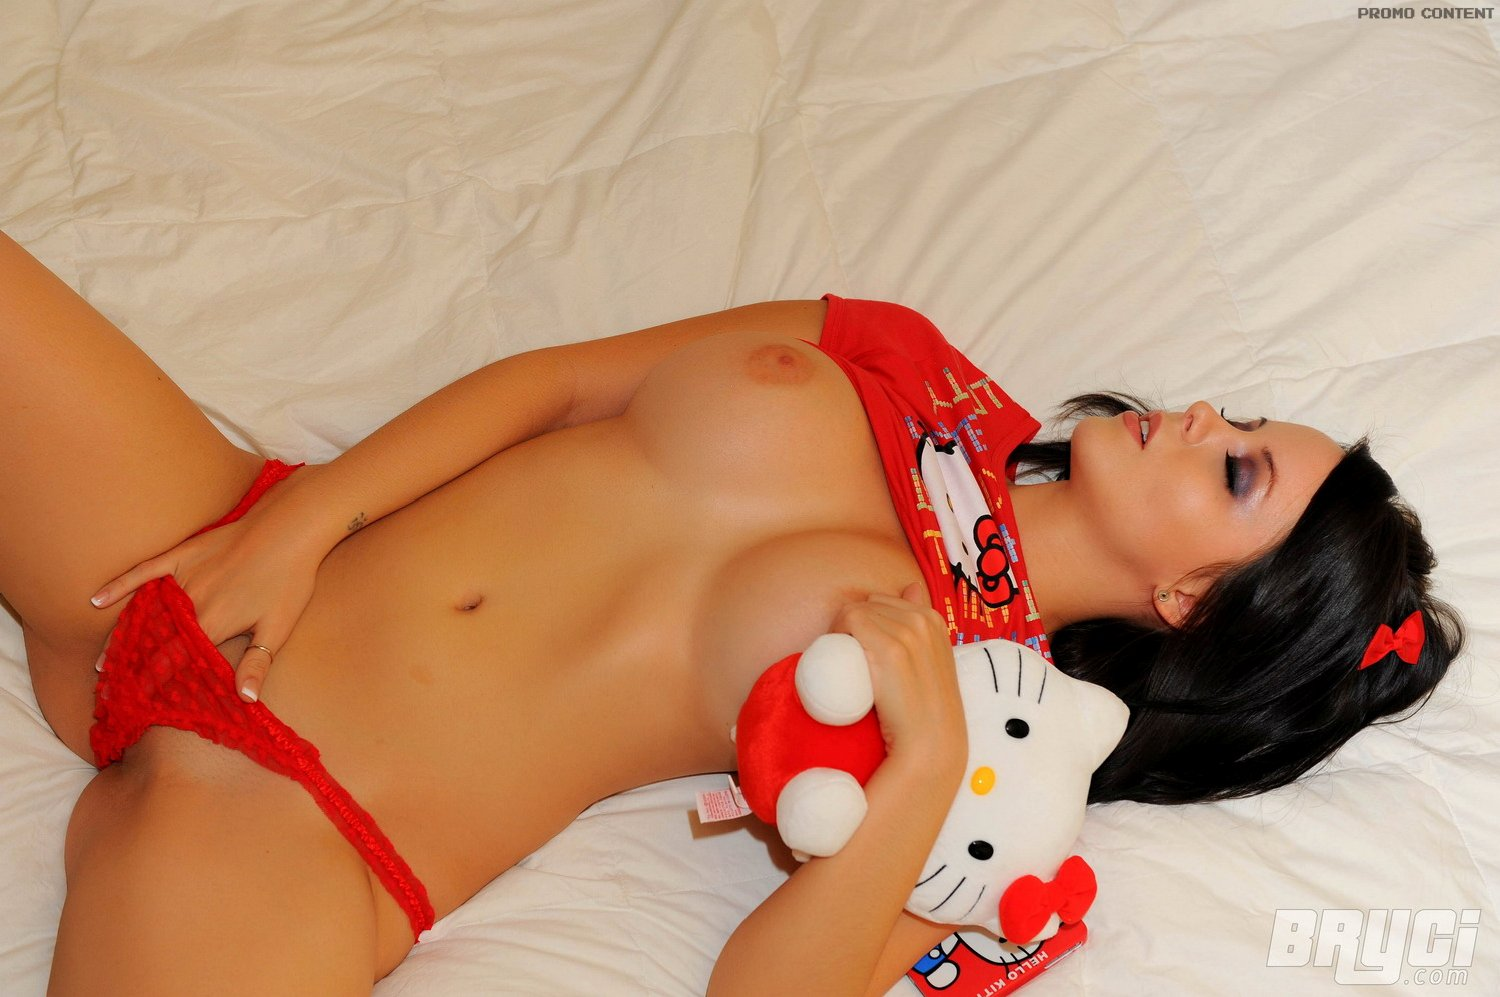 sexy-nude-hello-kitty-young-son-touching-his-mothers-breasts